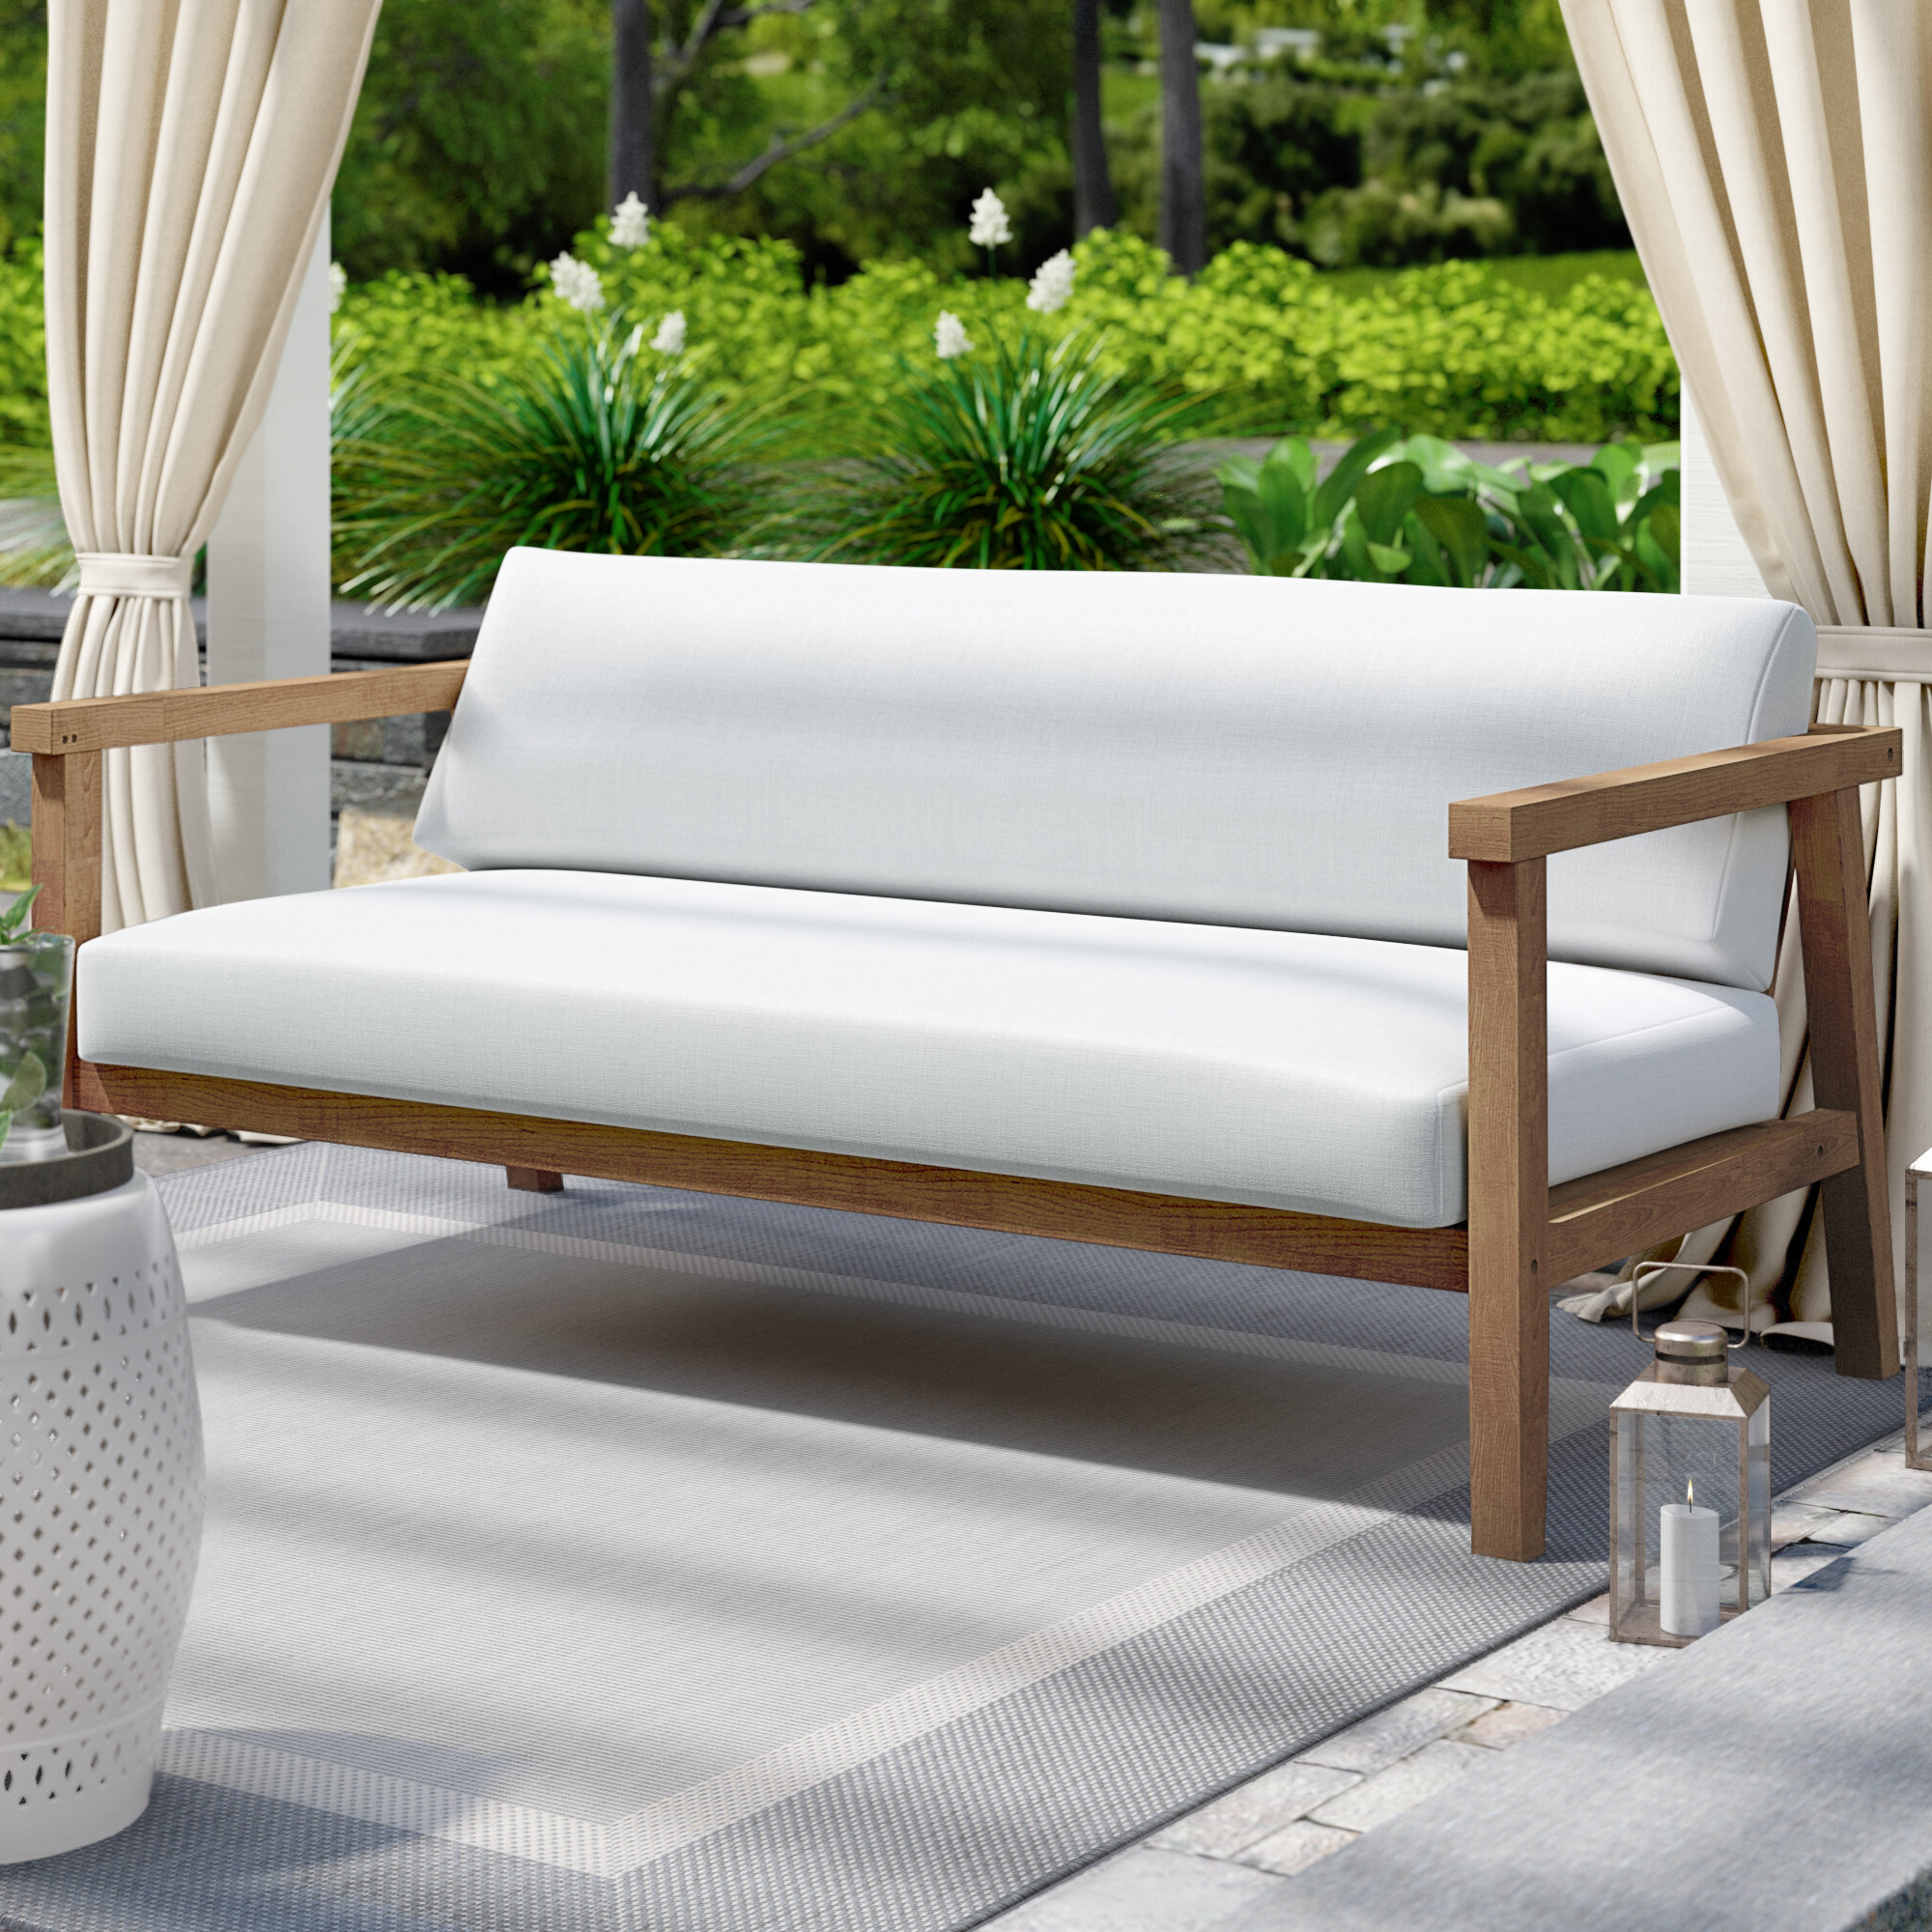 Annalese Outdoor Teak Loveseat With Cushions Pertaining To Latest Jamilla Teak Patio Sofas With Cushion (View 3 of 25)